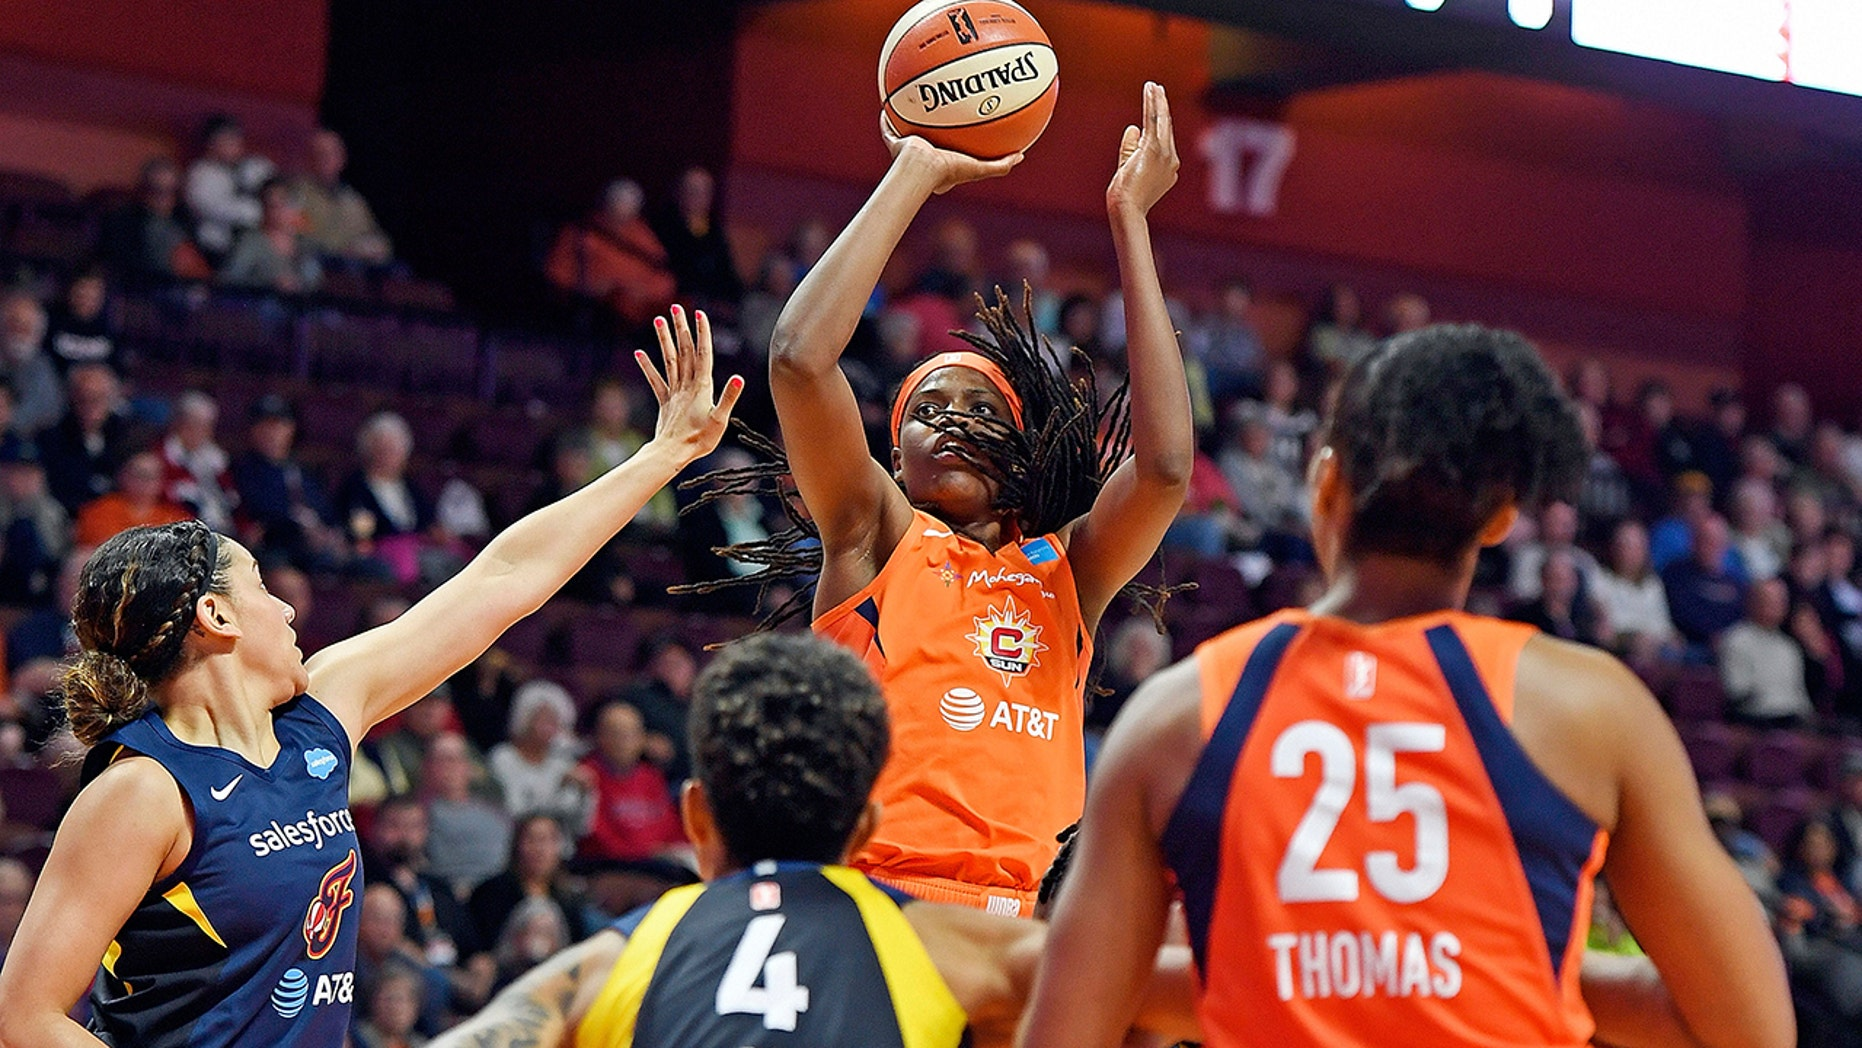 FILE - In this May 28, 2019, record photo, Connecticut Sun core Jonquel Jones shoots over a Indiana Fever invulnerability during a WNBA basketball game, in Uncasville, Conn. Led by Jones, a Sun (8-1) have won their final 6 games and have started to put a small stretch between themselves and a rest of a league. (Sean D. Elliot/The Day around AP, File)